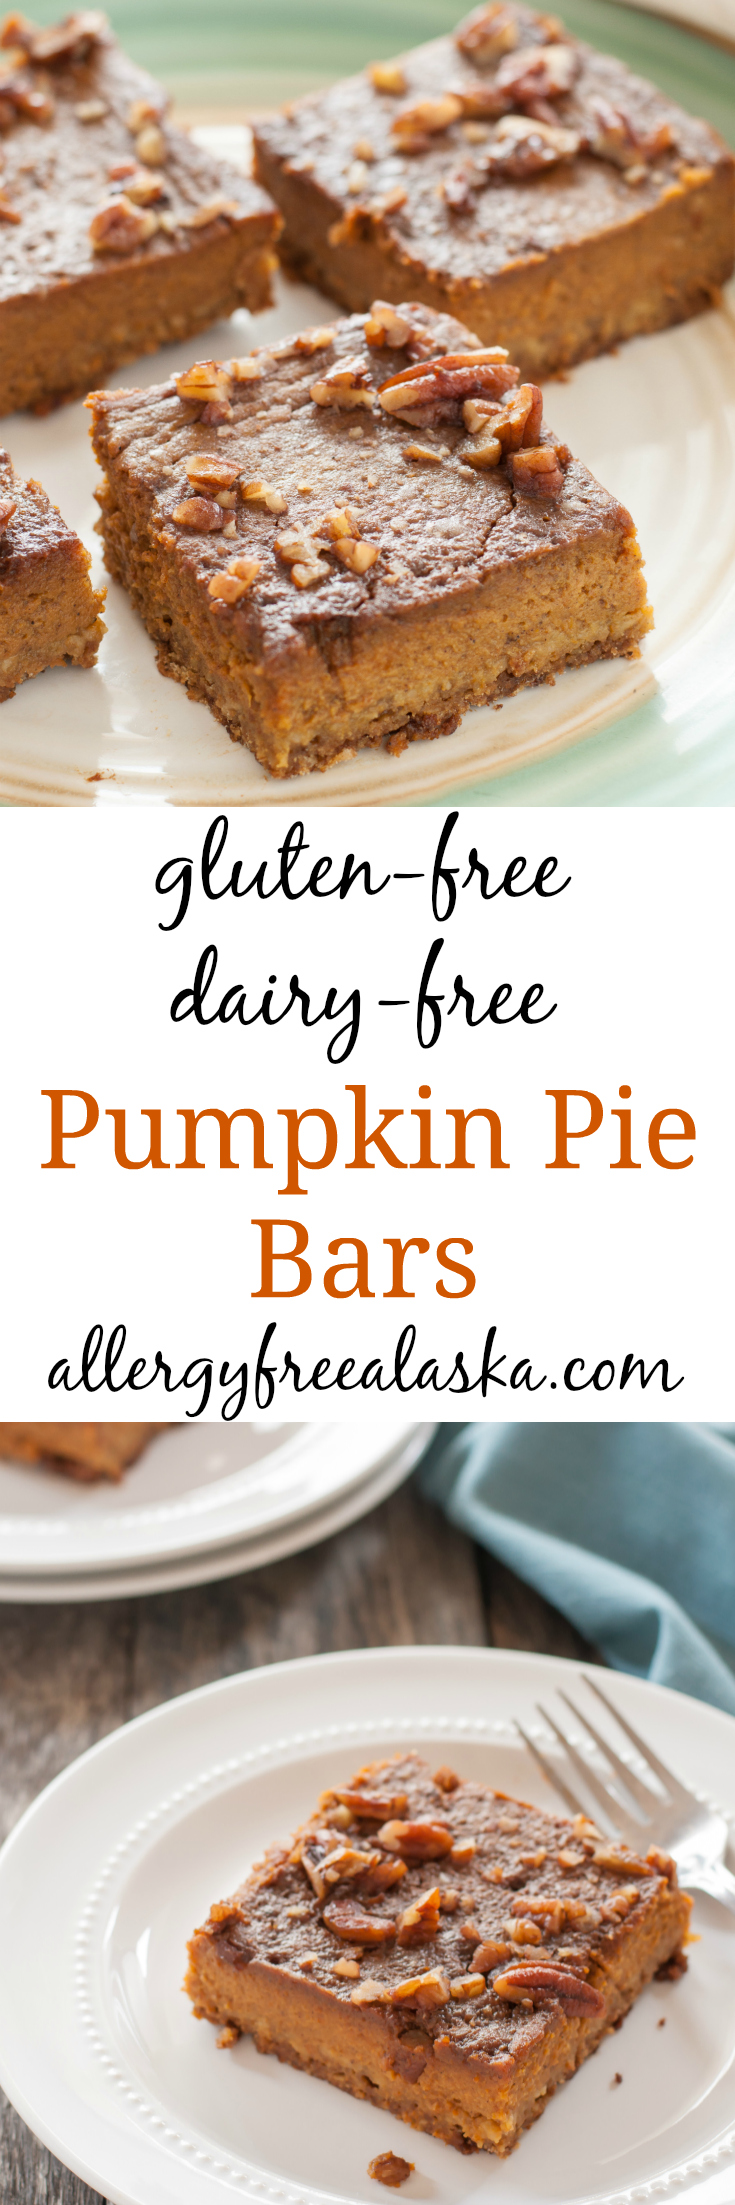 gluten-free-dairy-free-pumpkin-pie-bar-recipe-from-allergy-free-alaska